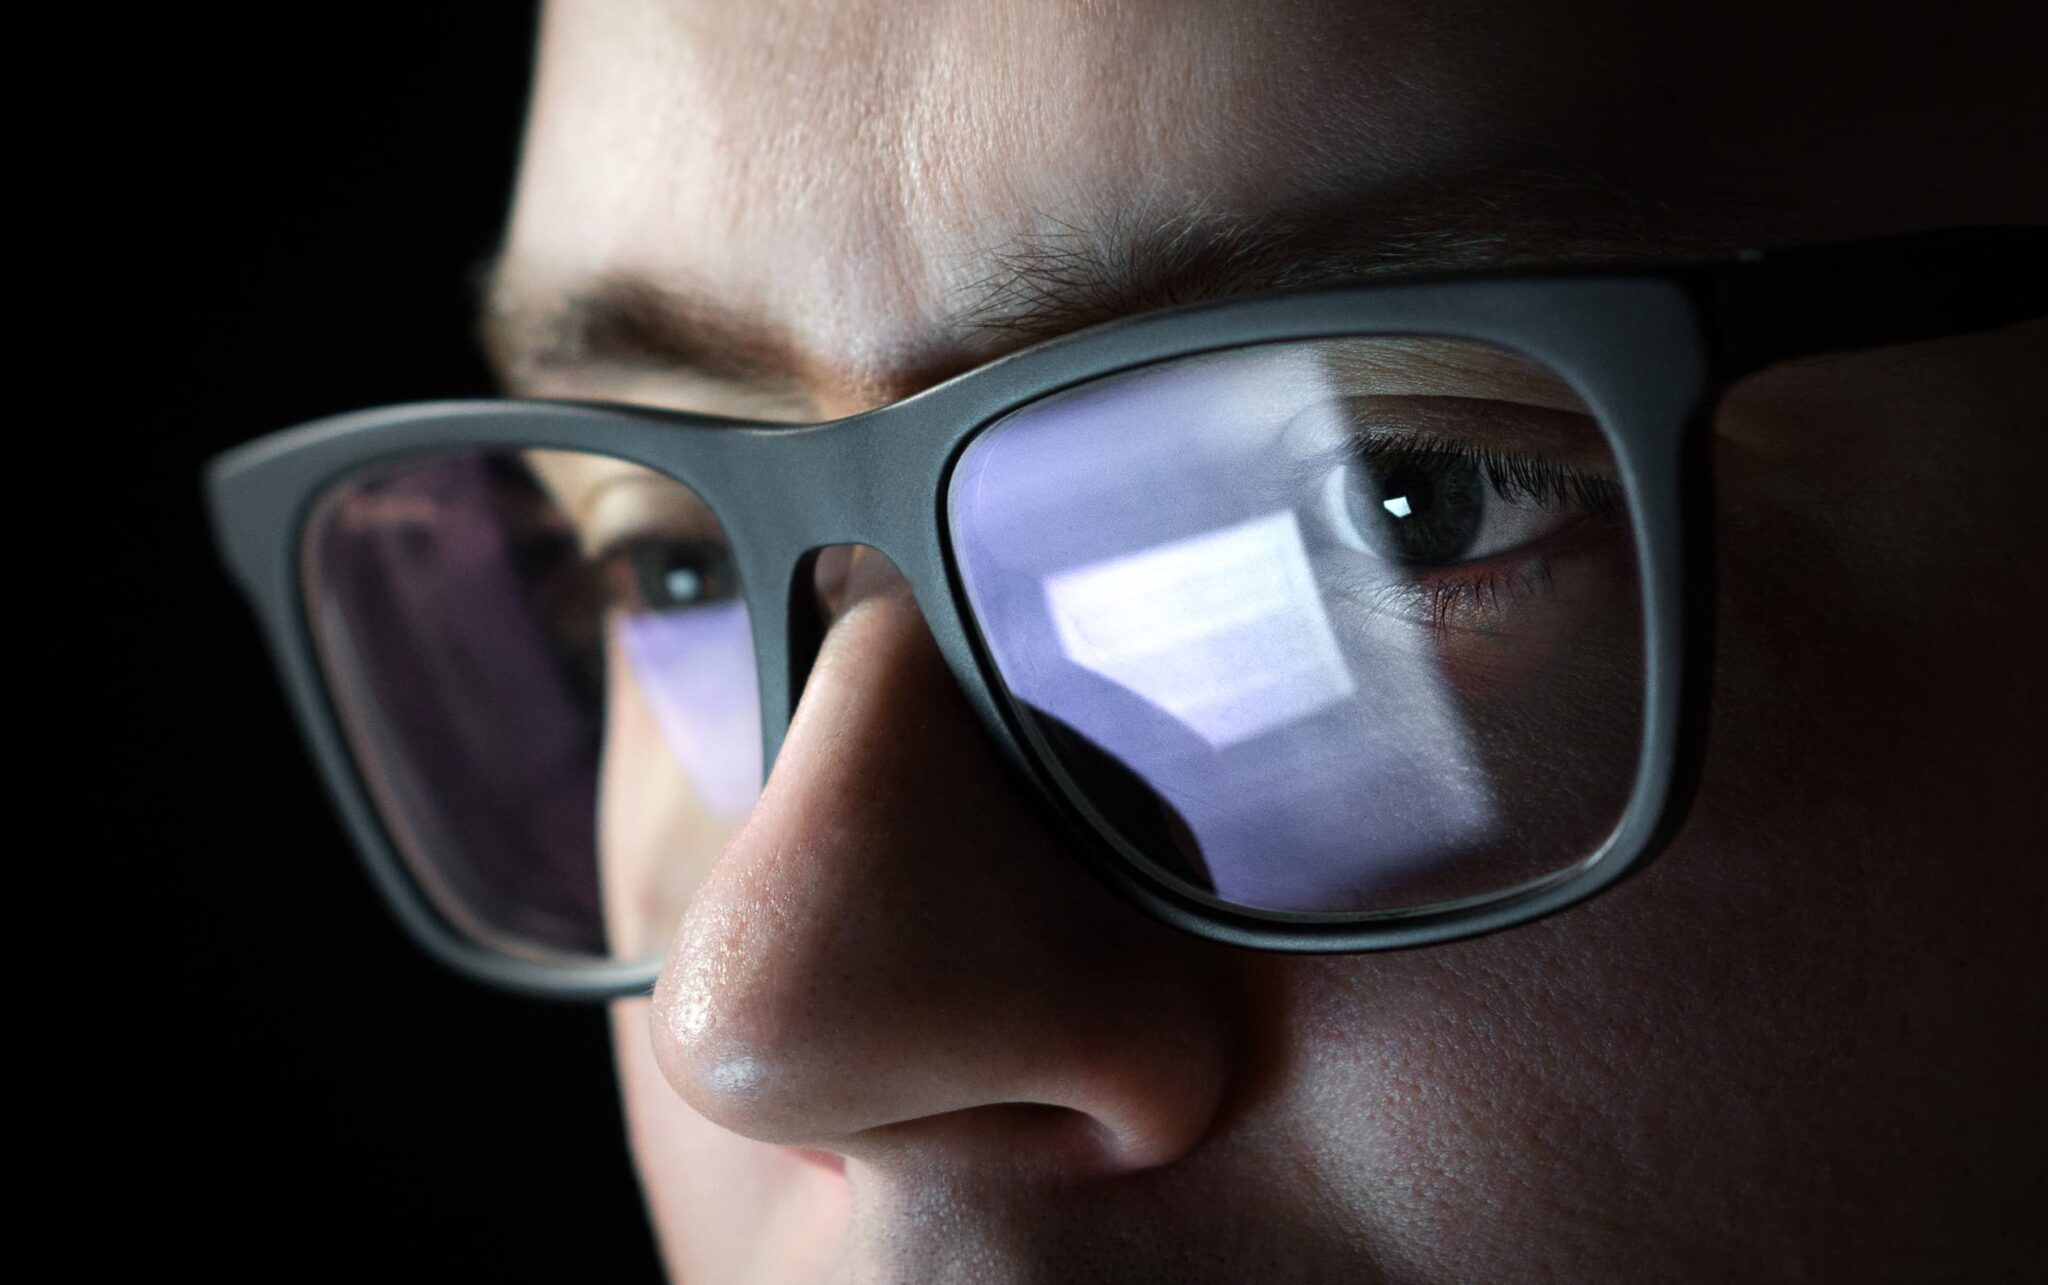 Could Trendy Blue Light Glasses Help With Eye Fatigue?